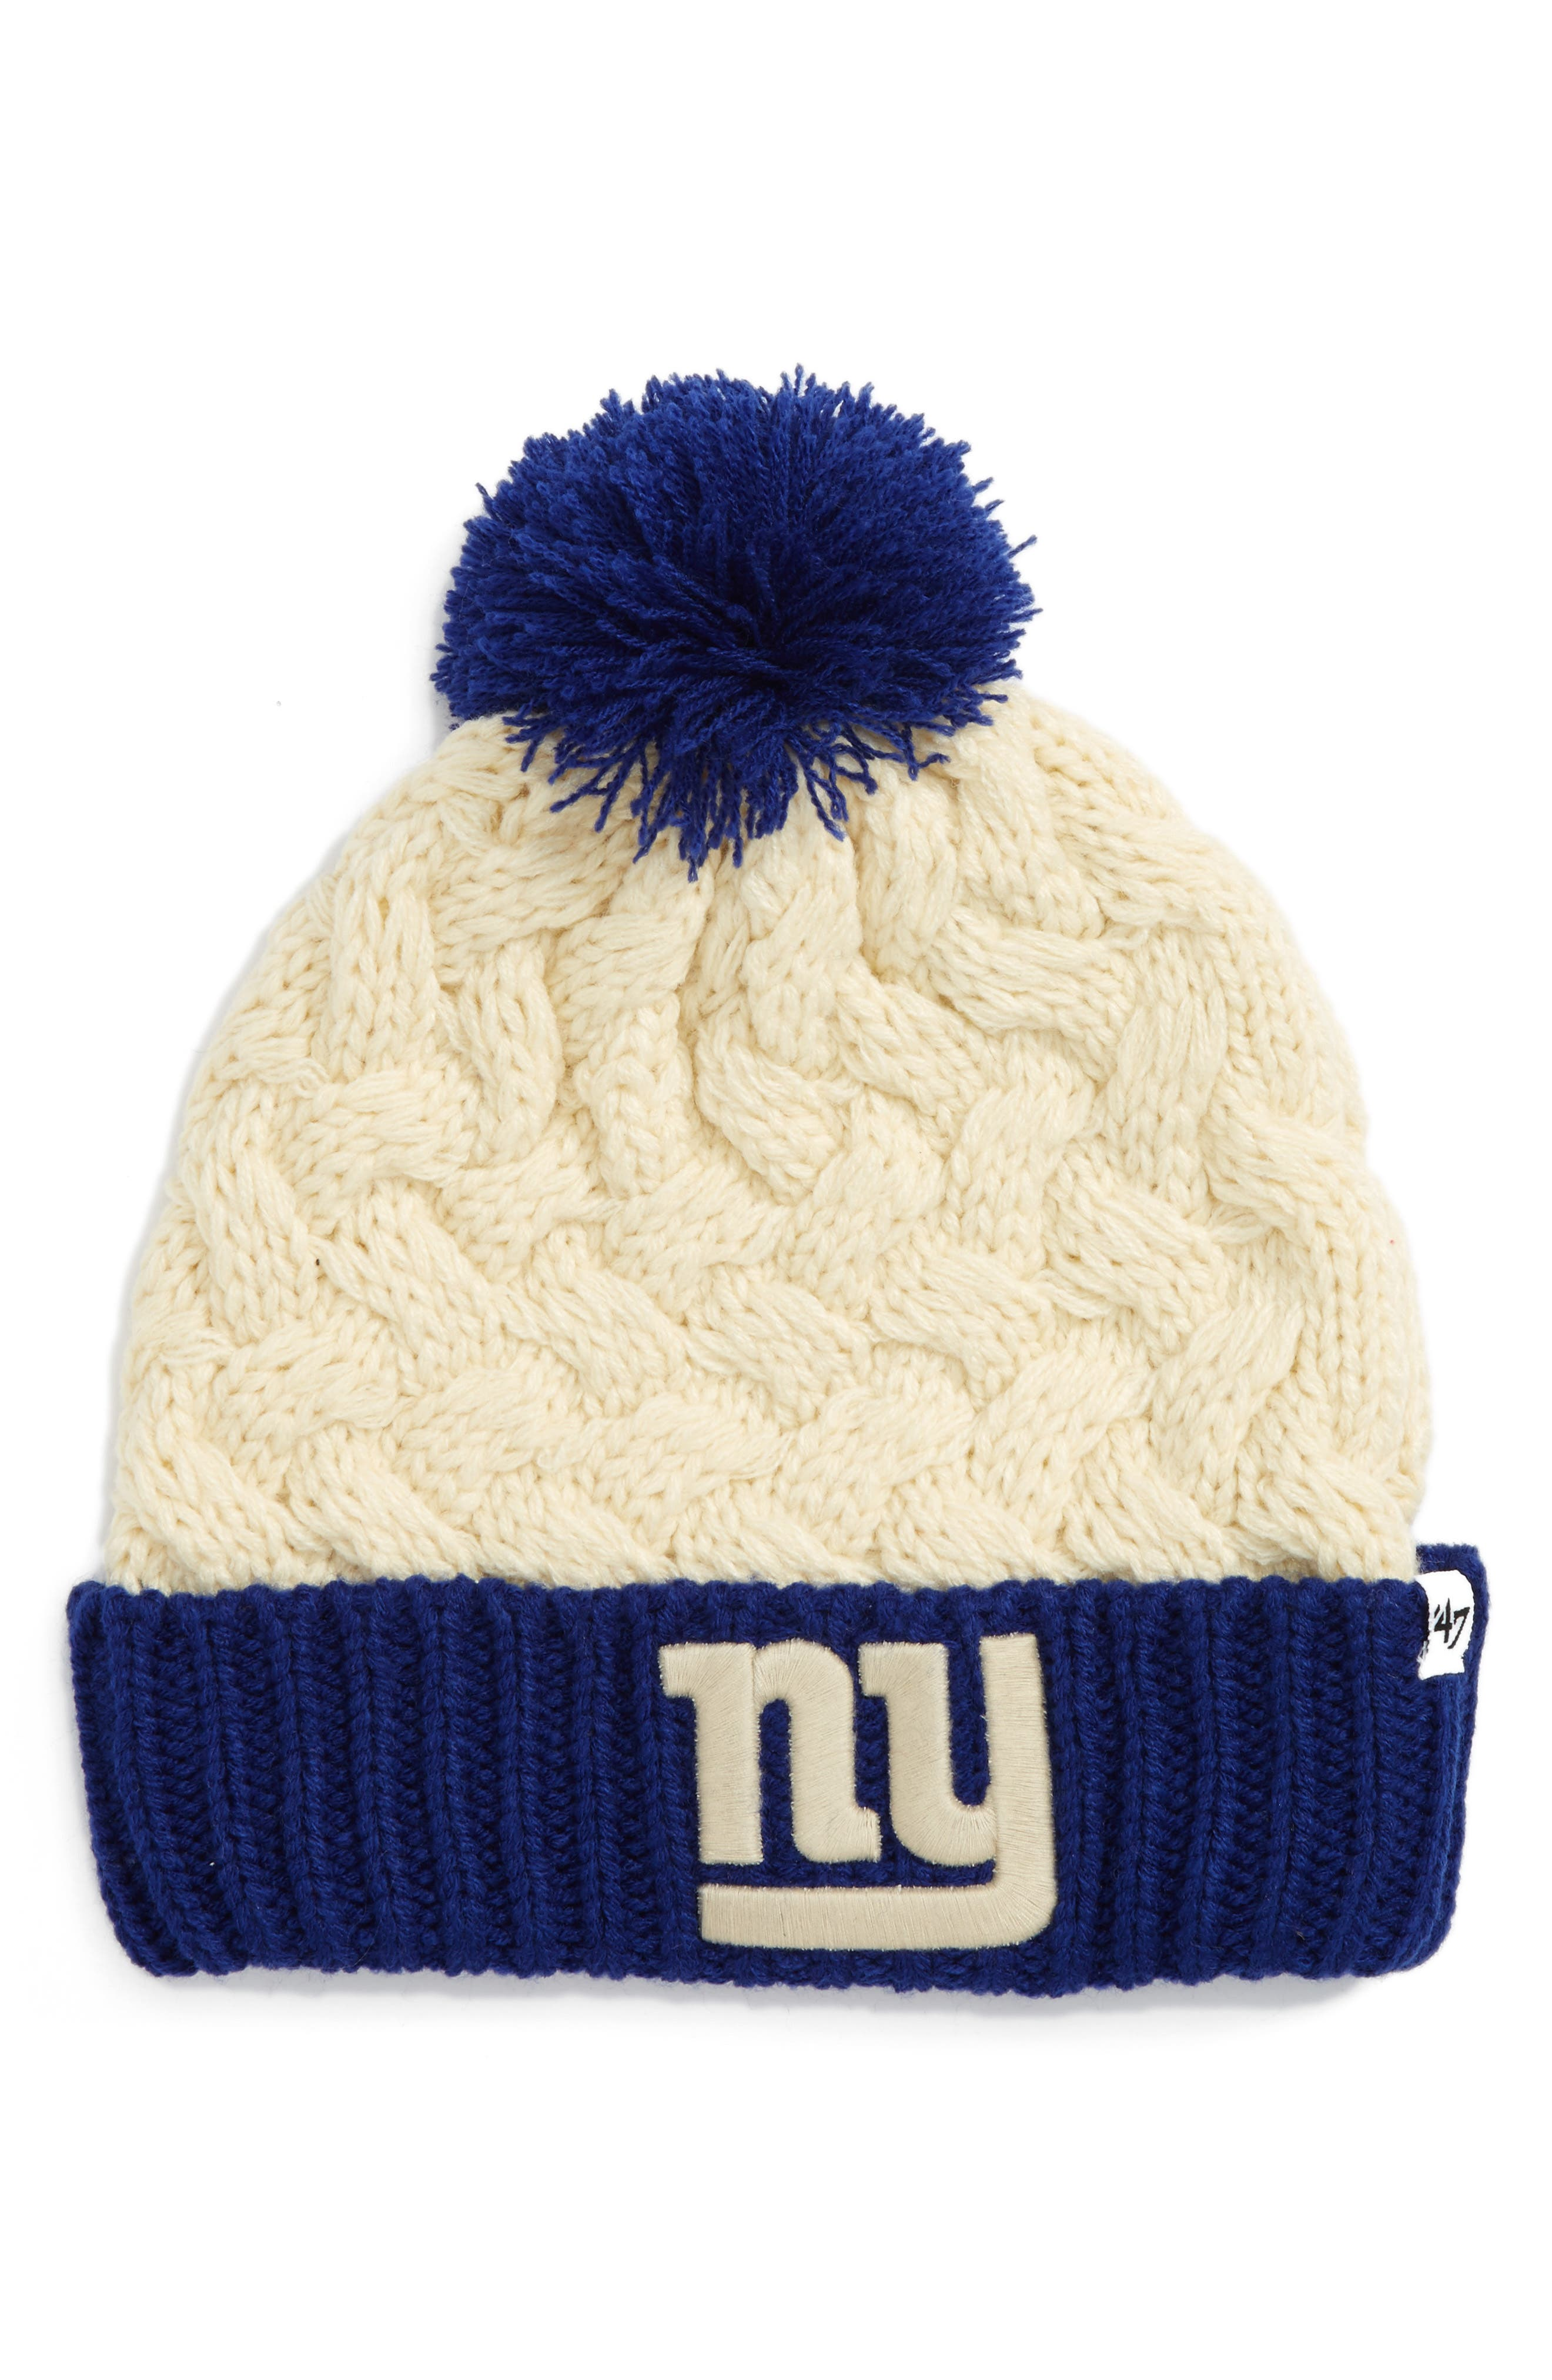 Alternate Image 1 Selected - '47 Matterhorn NY Giants Beanie